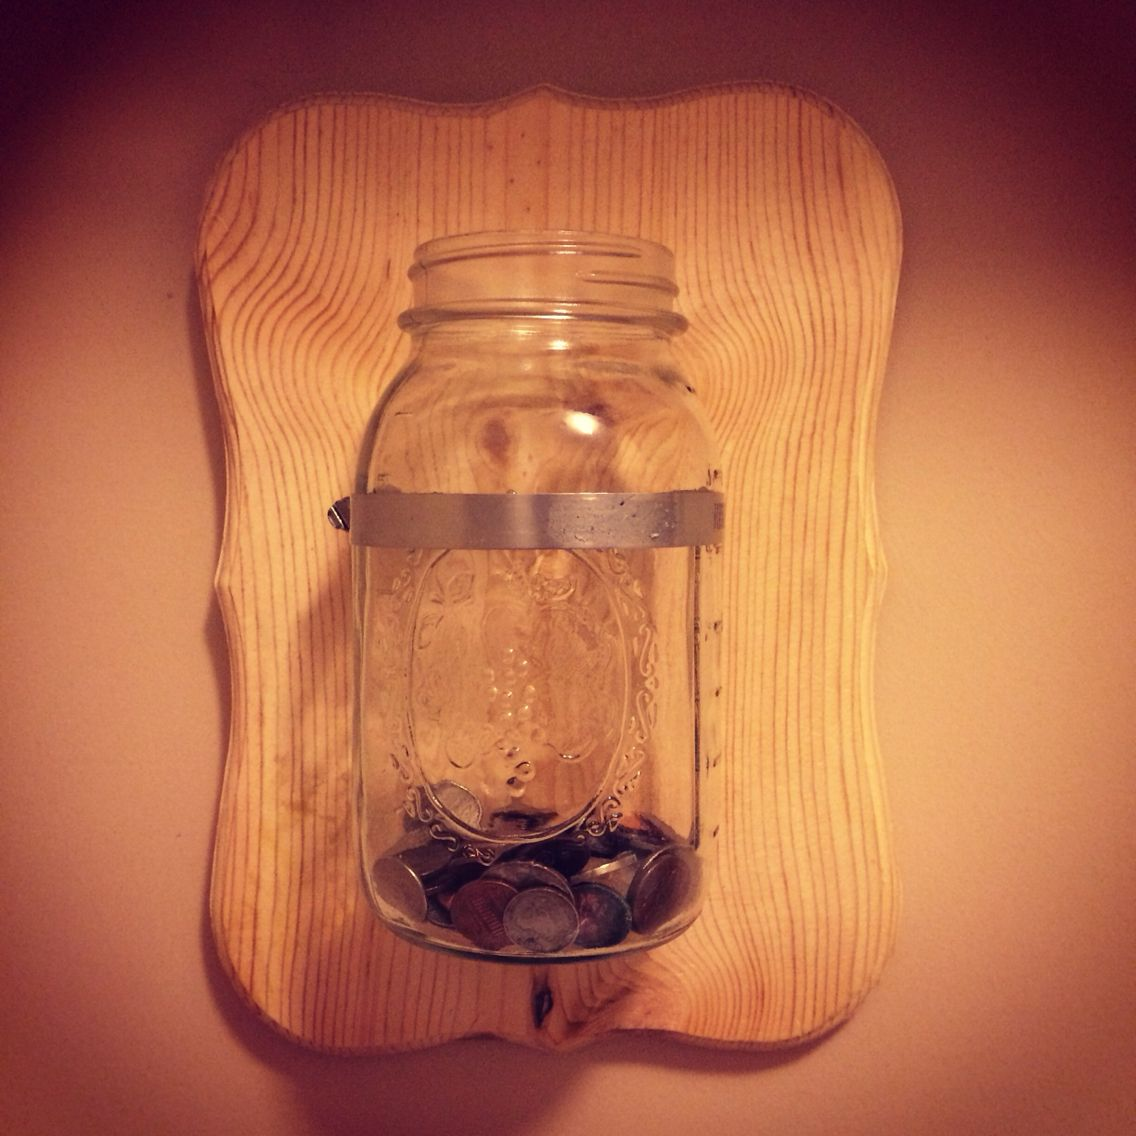 Keep the change rustic laundry room decor. Ball mason jar from goodwill: $1; wood plaque from Walmart: $4.99; metal clasp from Home Depot: $1.99